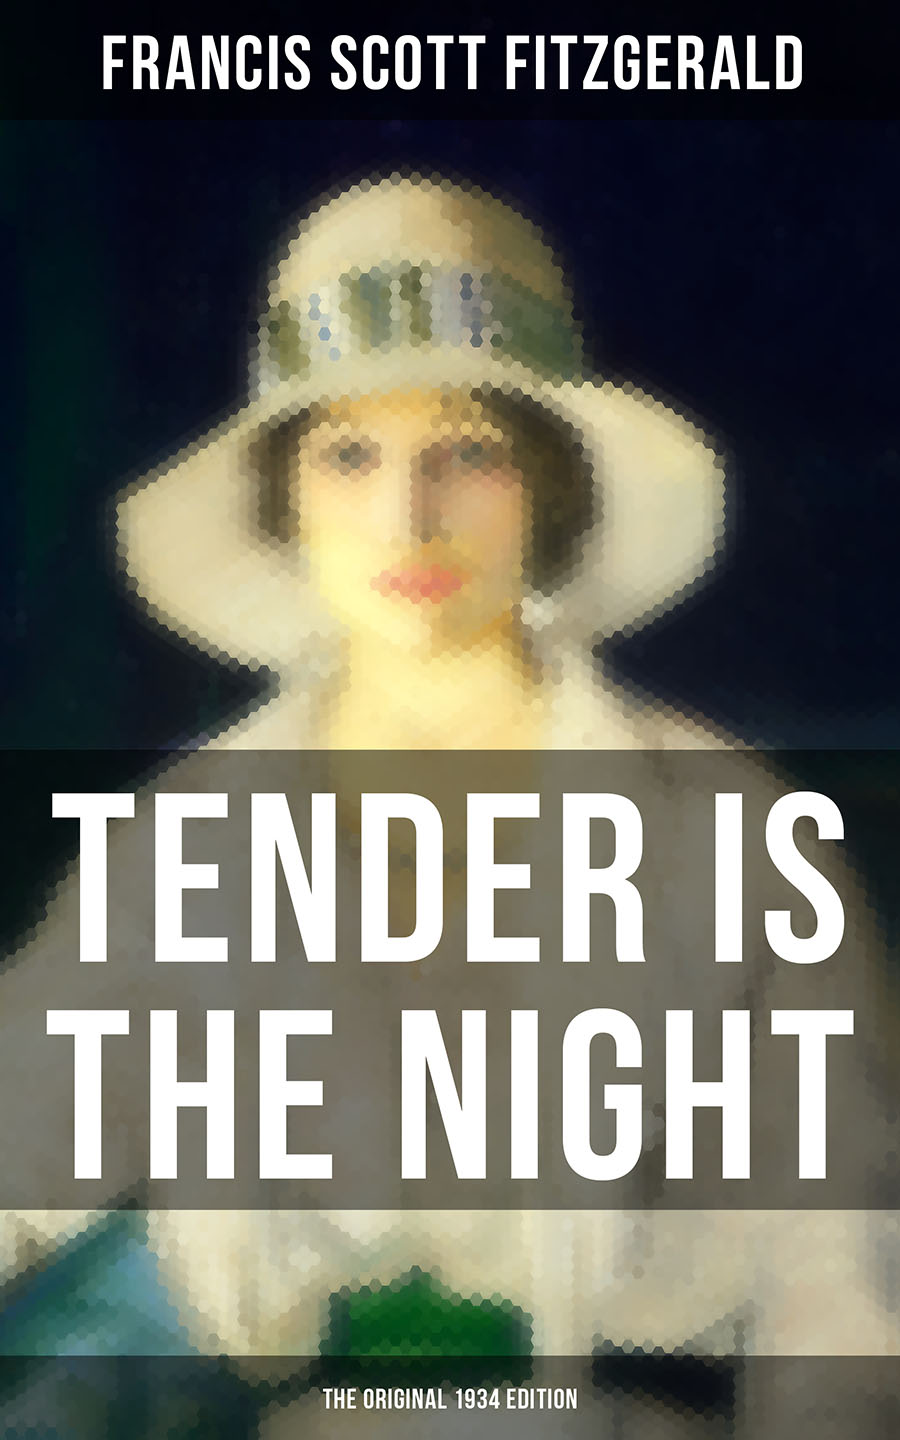 Francis Scott Fitzgerald TENDER IS THE NIGHT (The Original 1934 Edition) fitzgerald francis scott tender is the night isbn 978 5 521 00165 1